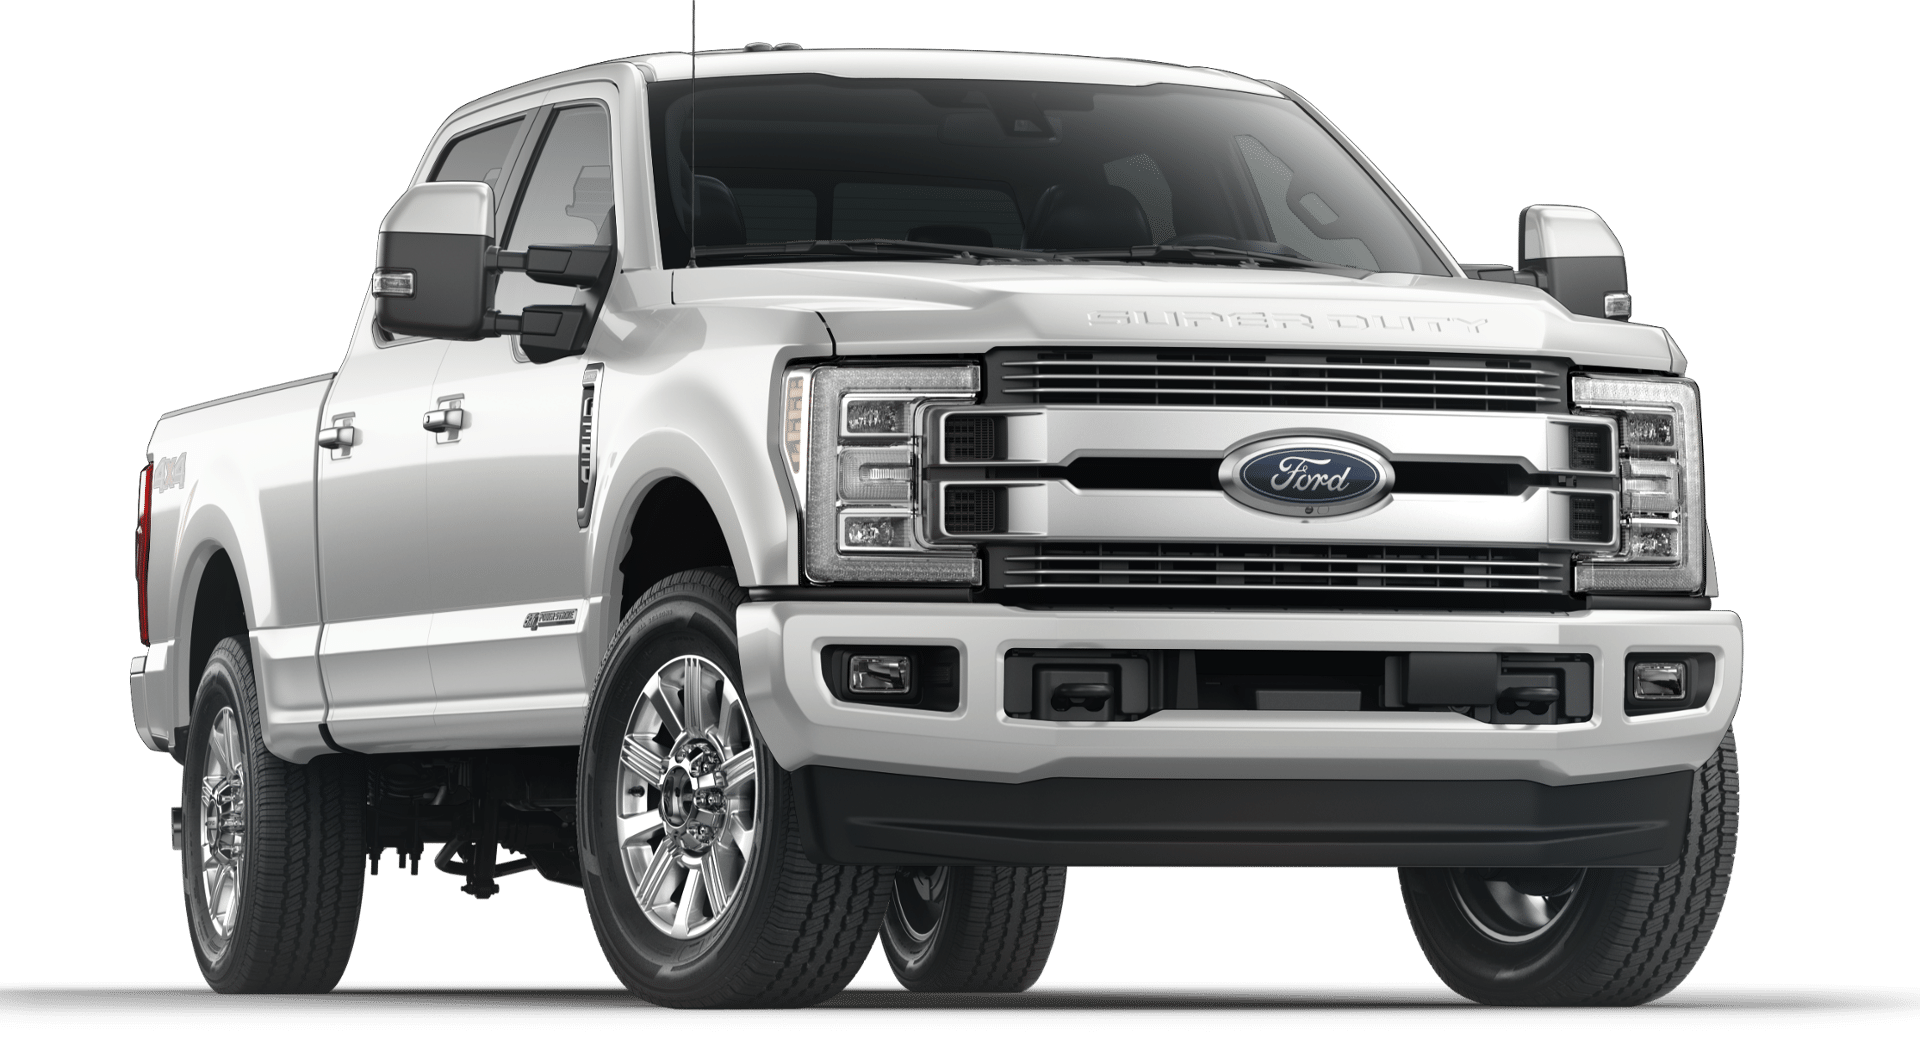 2019 Ford Super Duty F350 Beeville TX 78102 | 2019 Ford Super Duty F350 for sale in Beeville TX ...